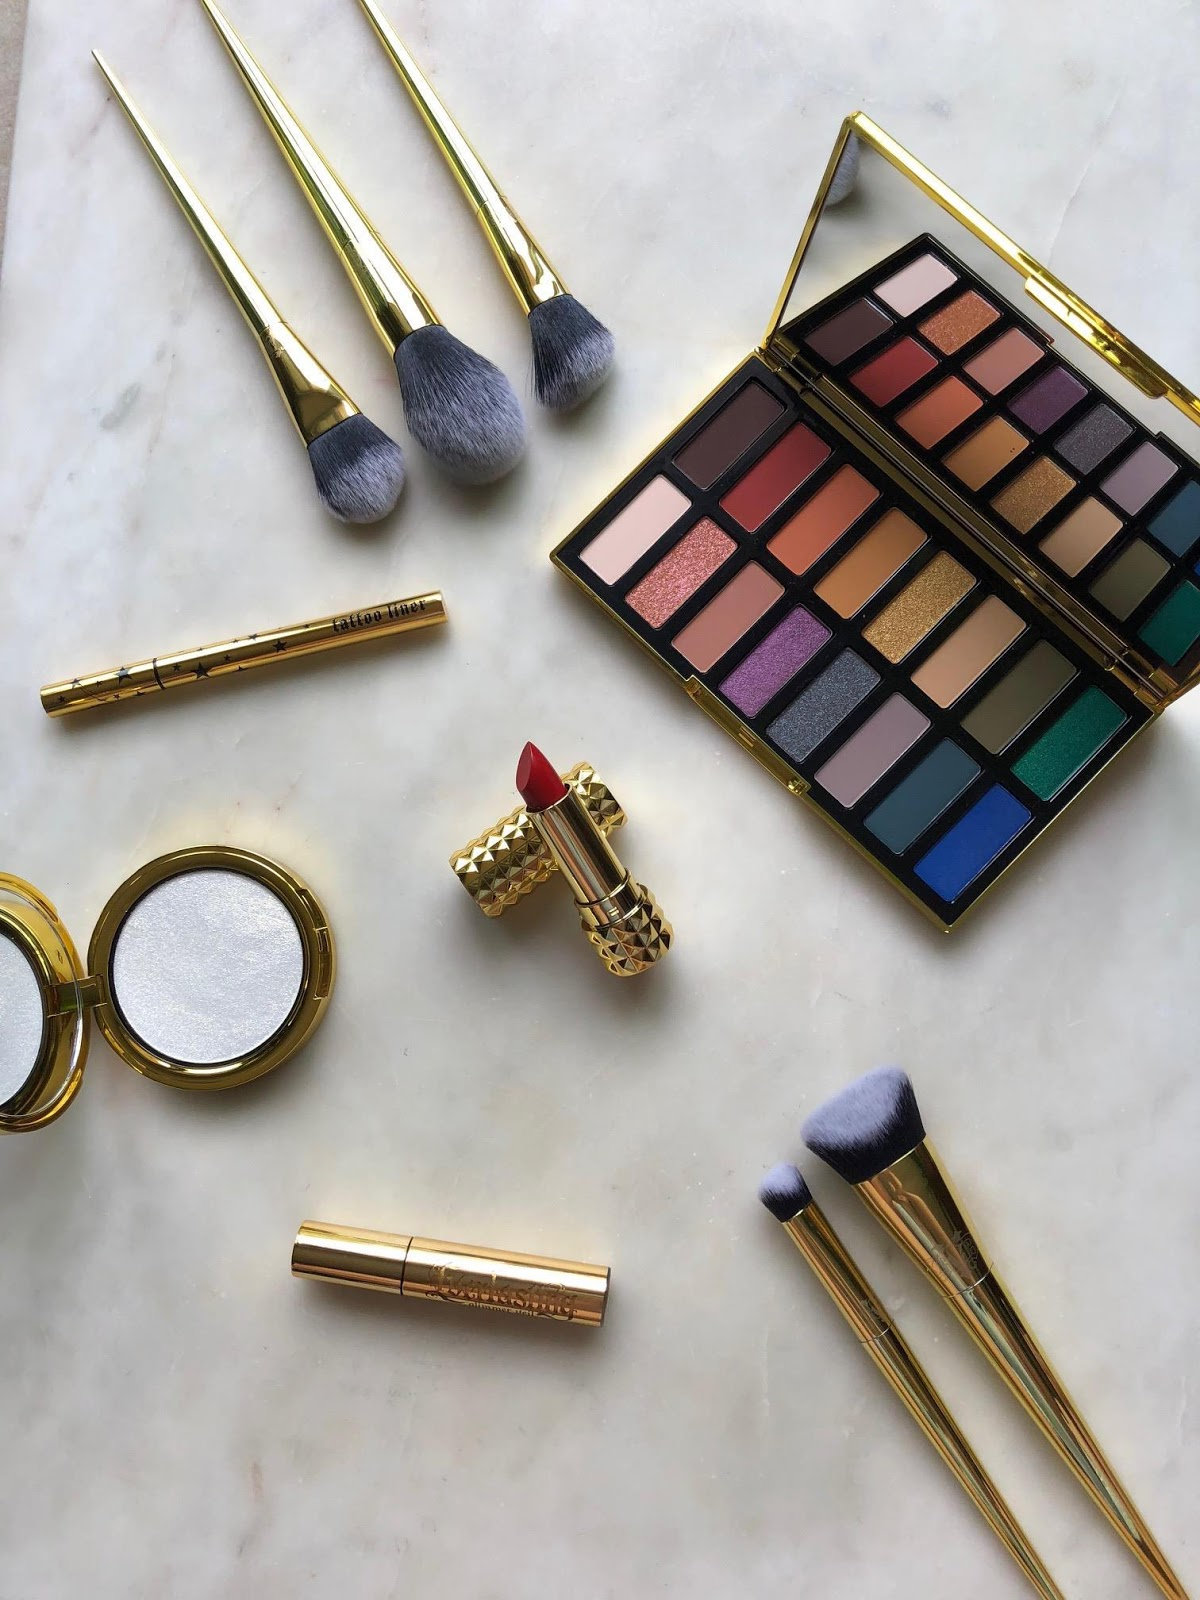 Kat Von D 10th Anniversary Collection: A quick review